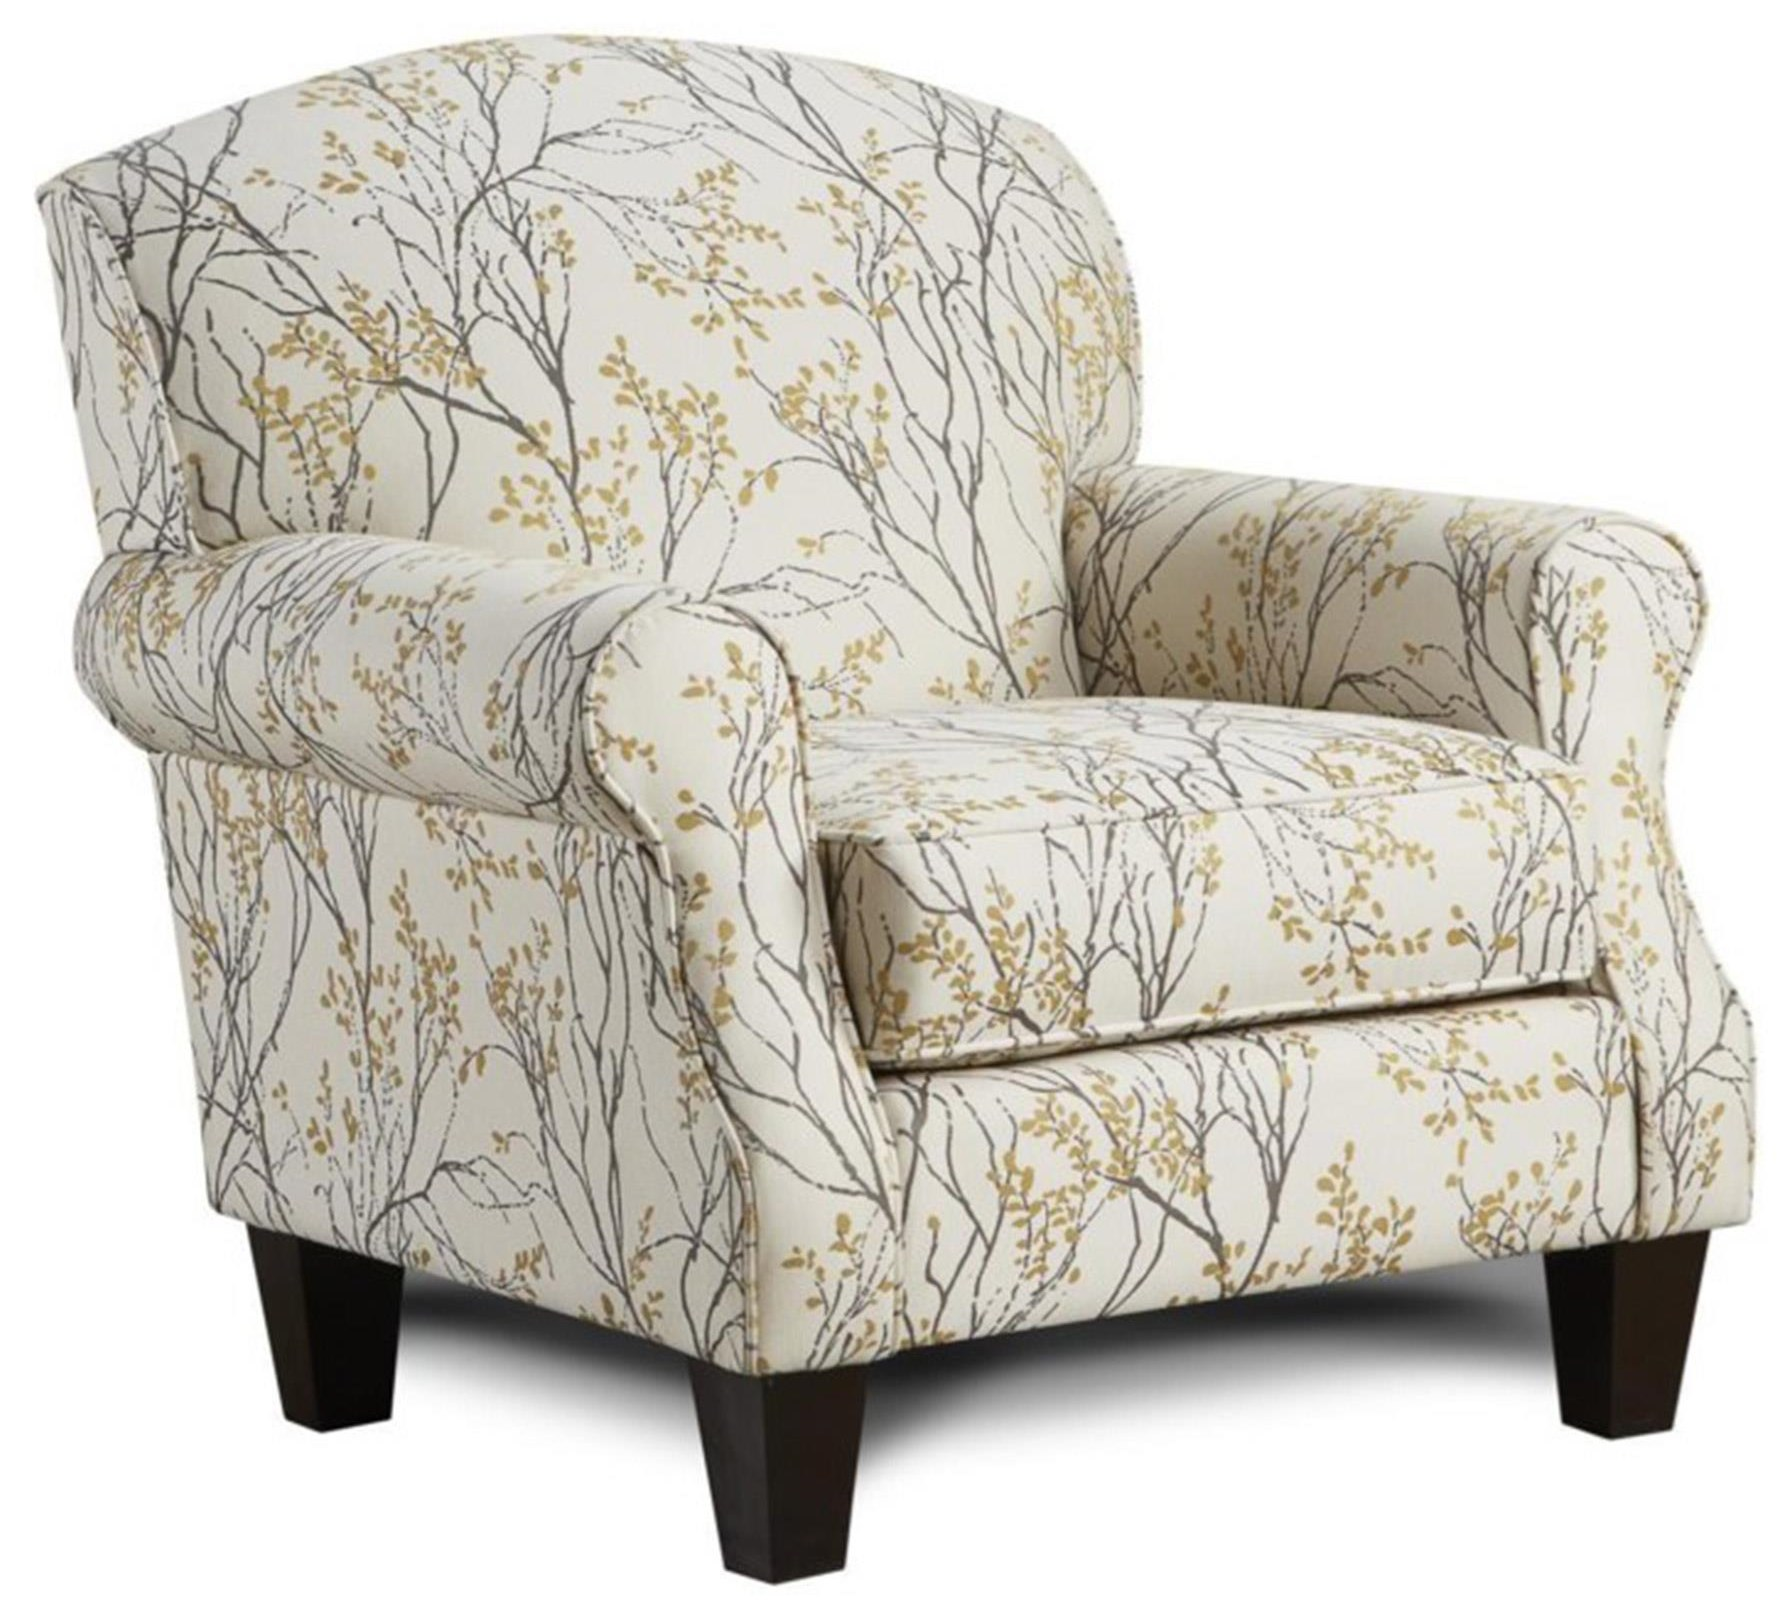 Fusion Furniture 4200 Myla Marigold Accent Chair - Item Number: 532 MYLA-MARIGOLD